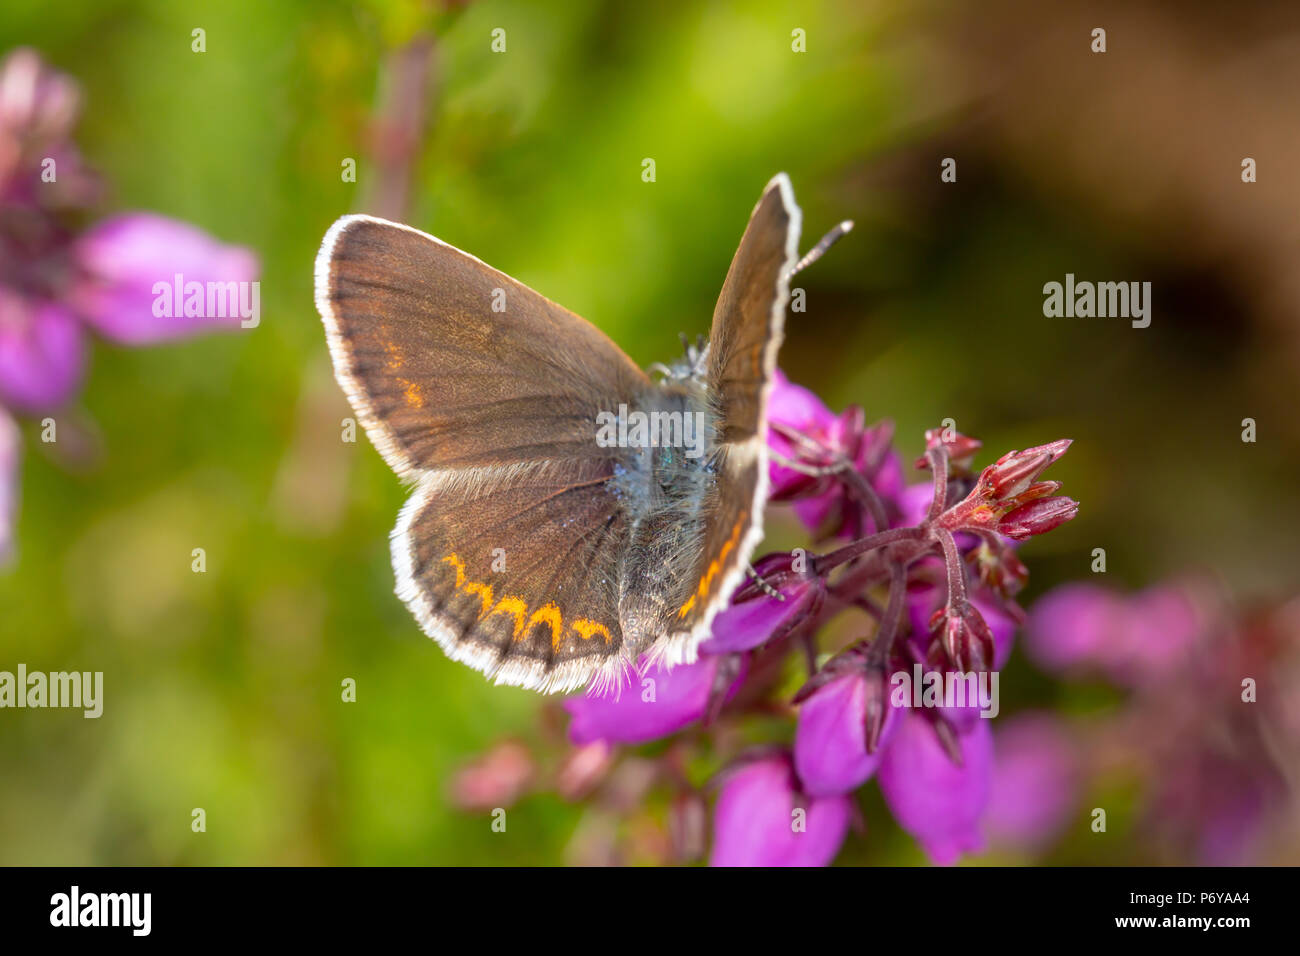 Close-up photo of female Silver-studded blue butterfly with wings open and from above. shot with narrow depth of field on Canford heath nature reserve - Stock Image